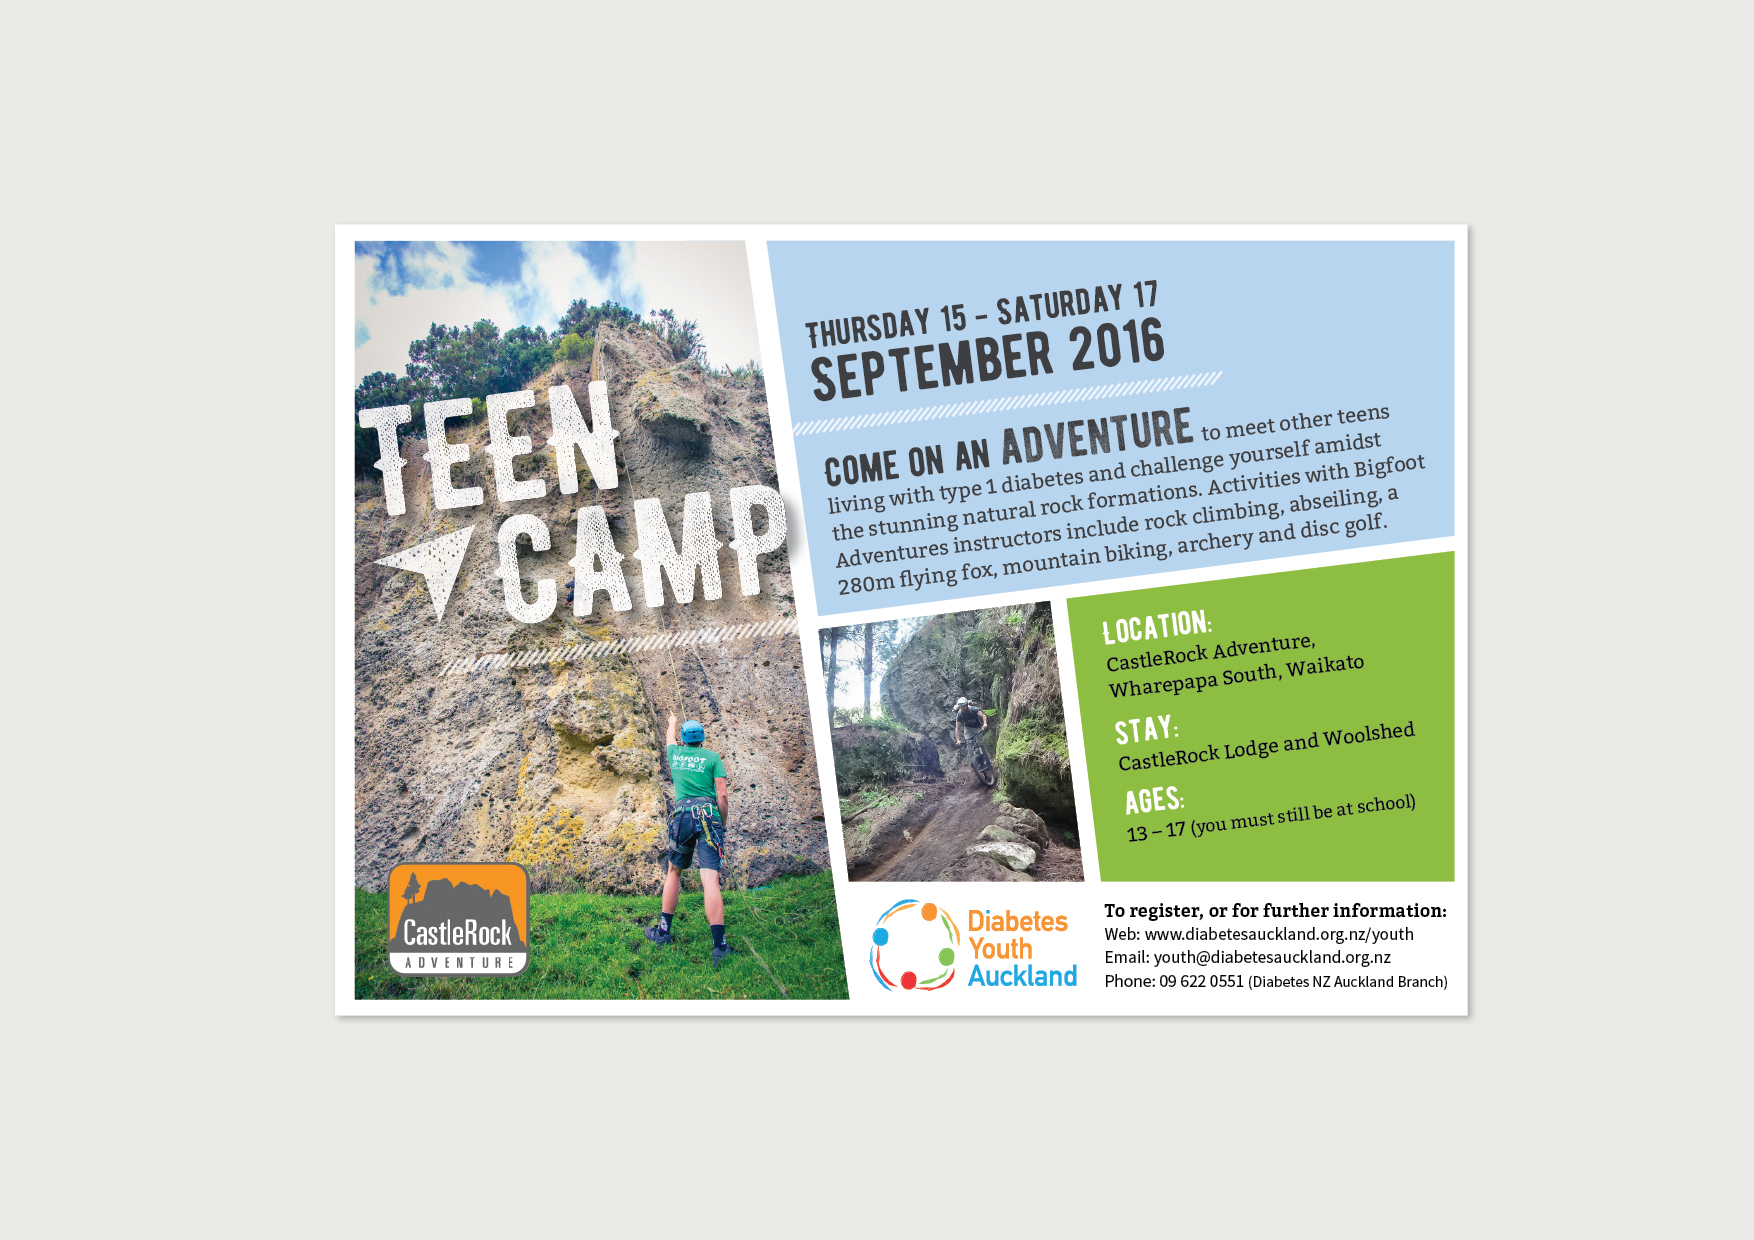 Diabetes Youth Auckland Teen Camp 2016 Ad